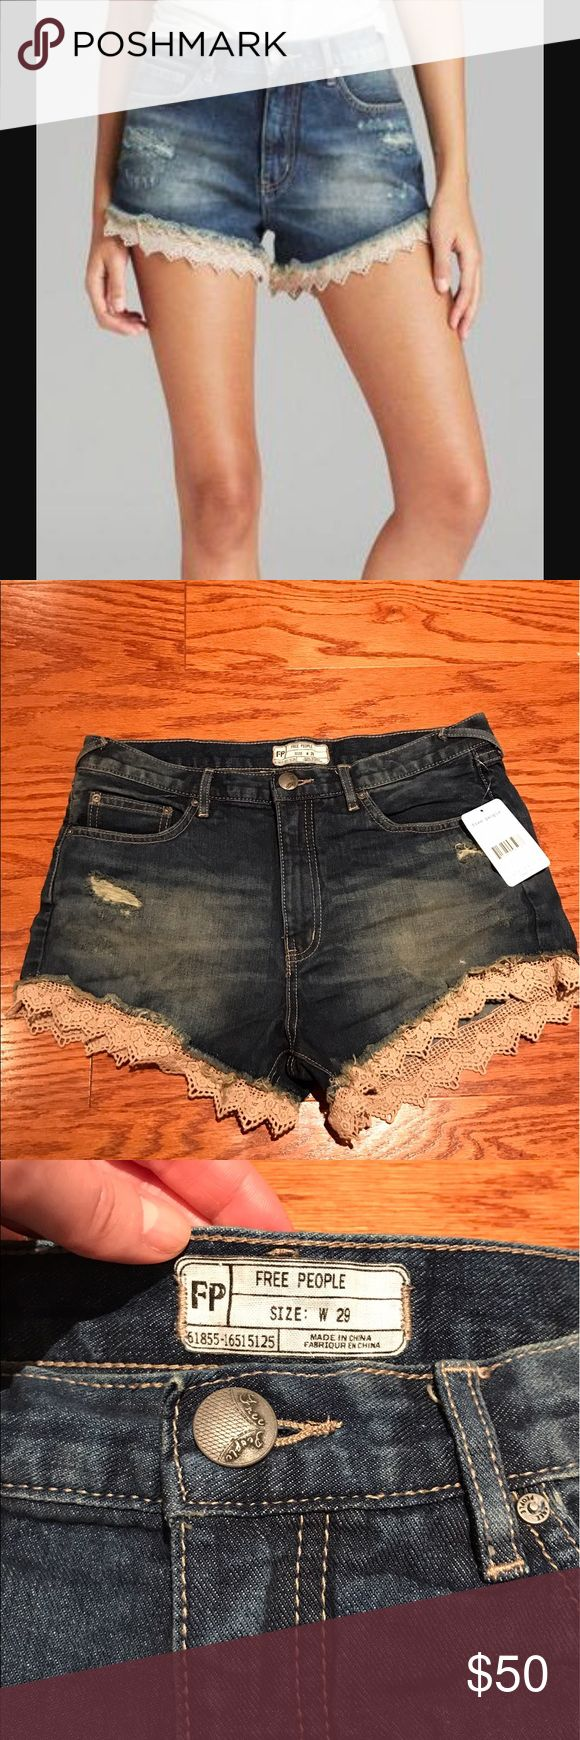 """NWT Free People Lacey cut off denim shorts NWT Free People Lacey cut off denim shorts- aero wash. Size 29. Distressed 5-pocket denim shorts with scalloped crochet trimming around bottom hems. Zipper and button fly. Some destructed texture in places for a cool, worn-in feel and look. Bottom hems above the trimming are frayed. 100% cotton - Frayed hem with beige crochet lace trim - Approx. 11"""" rise, 4"""" inseam Free People Shorts Jean Shorts"""